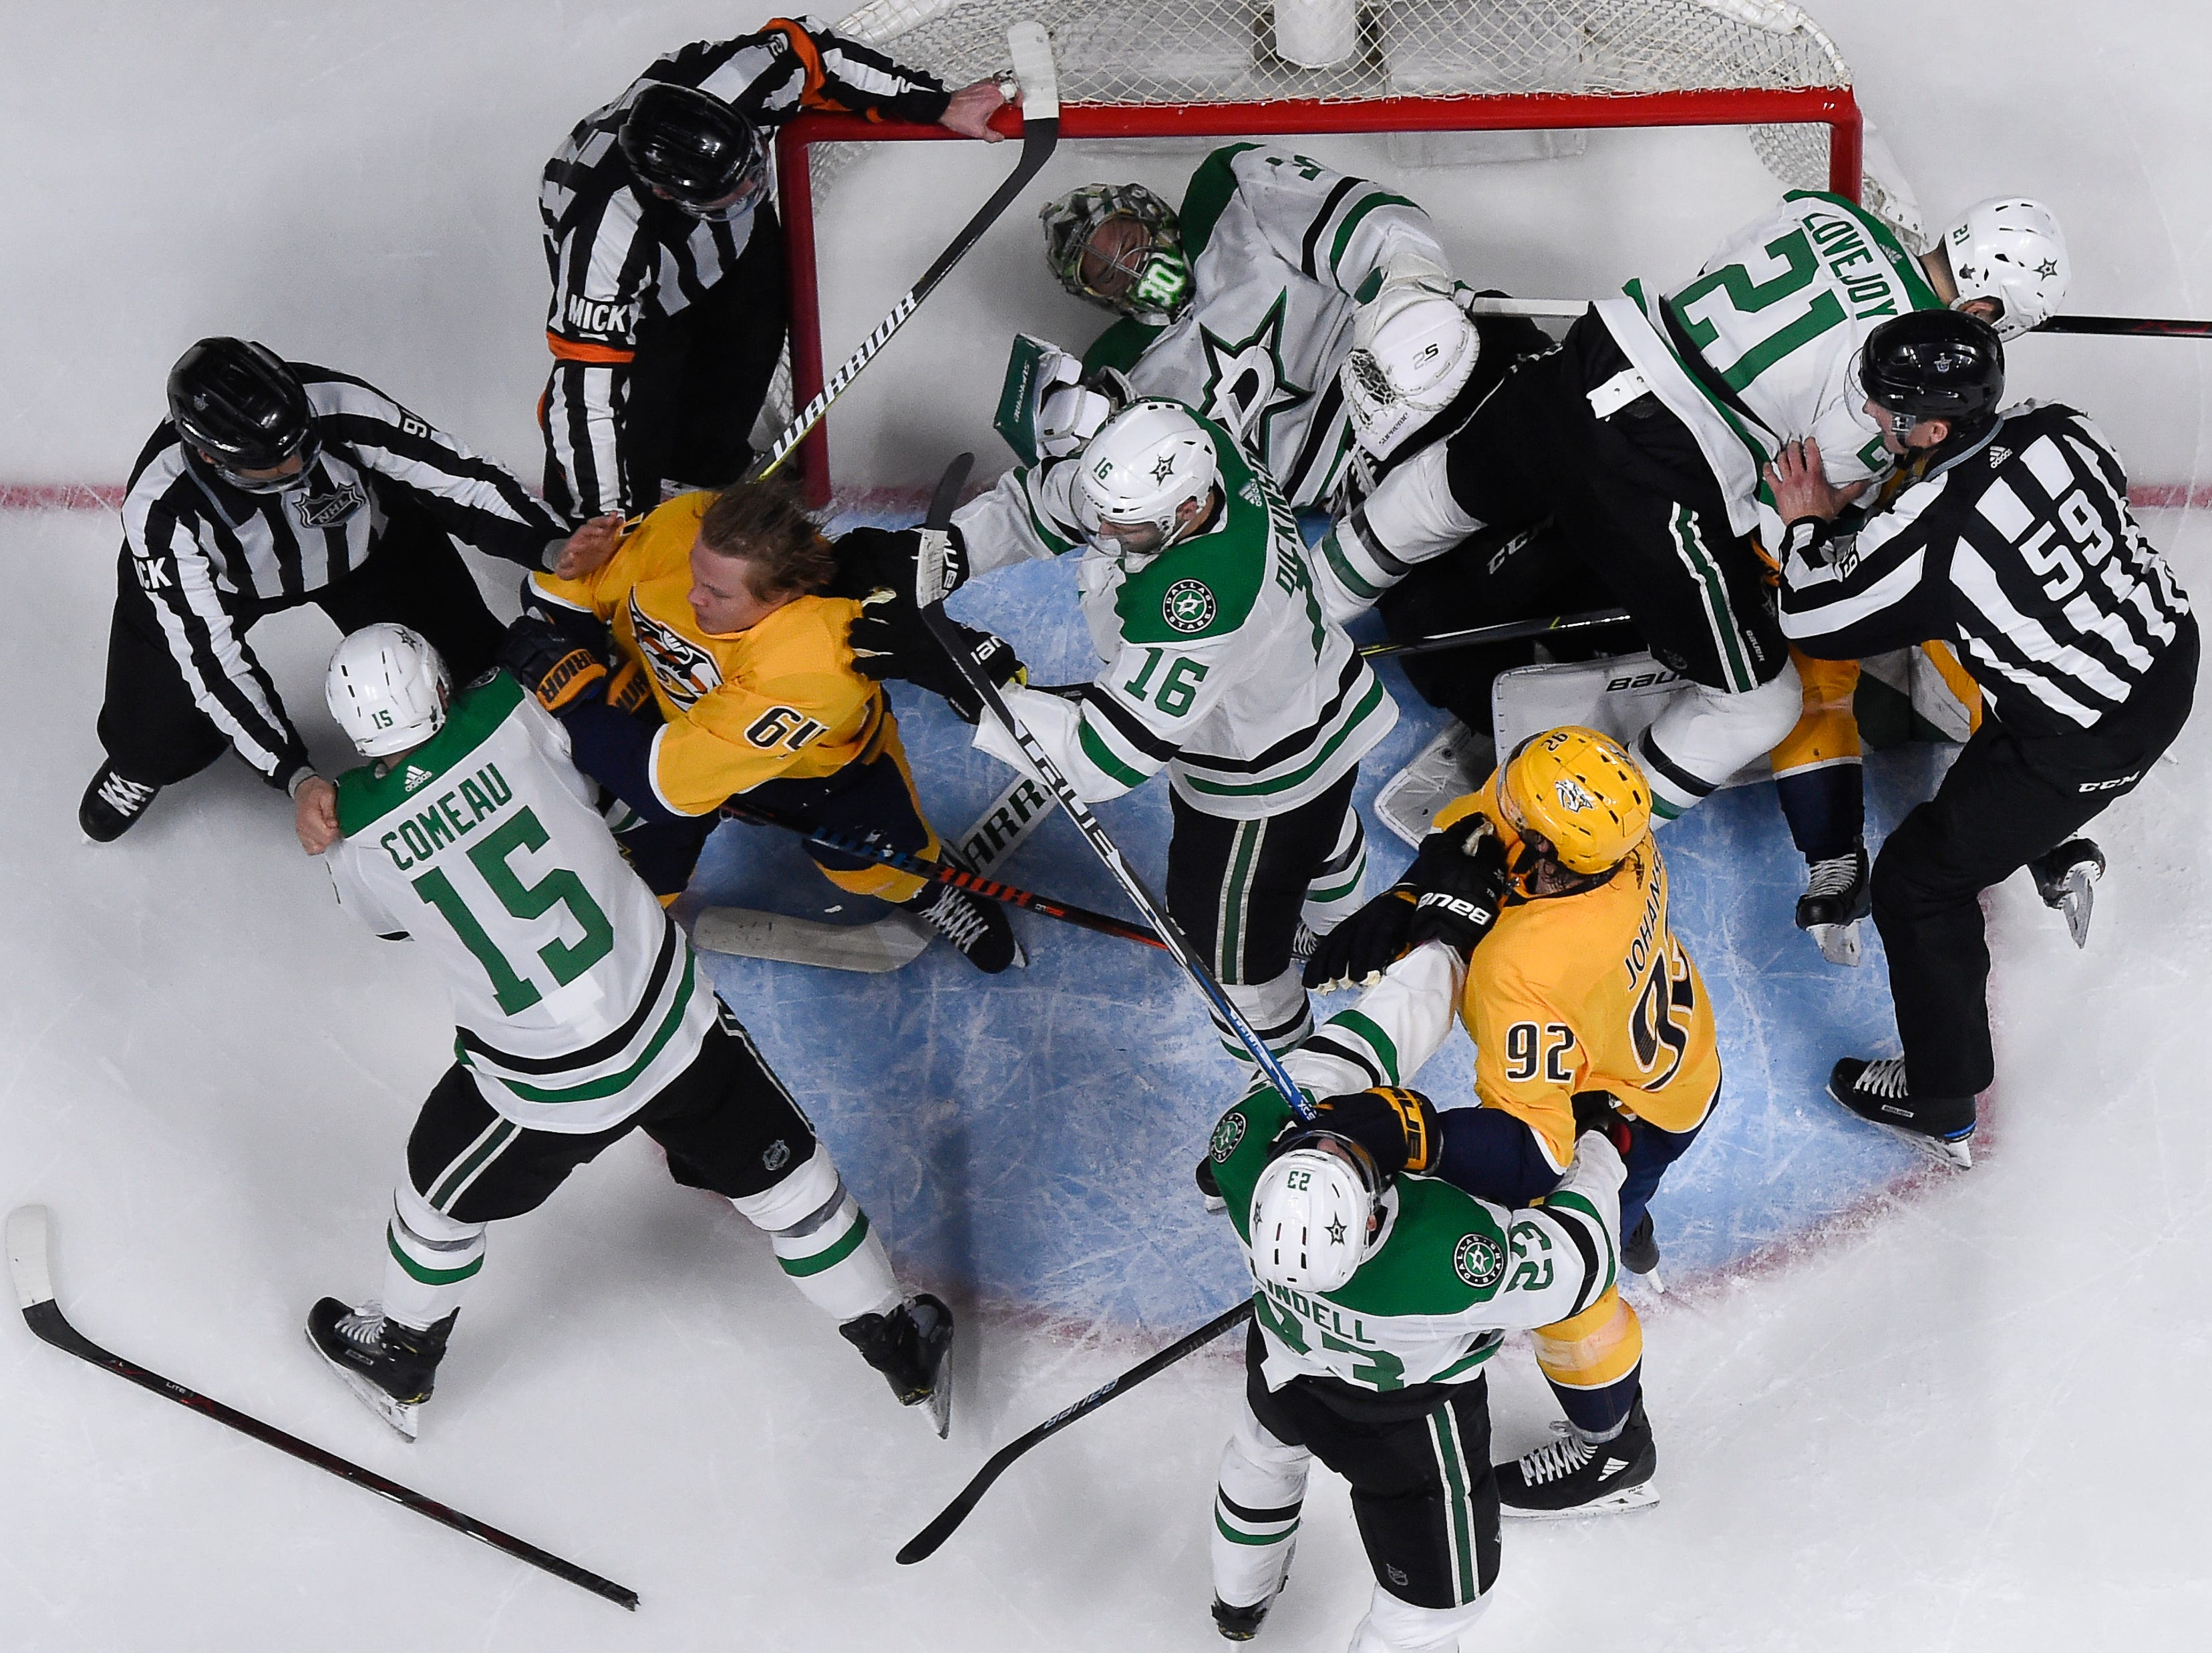 Nashville Predators and Dallas Stars fight in front of the goal during the first period of the divisional semifinal game at Bridgestone Arena Saturday, April 13, 2019 in Nashville, Tenn.